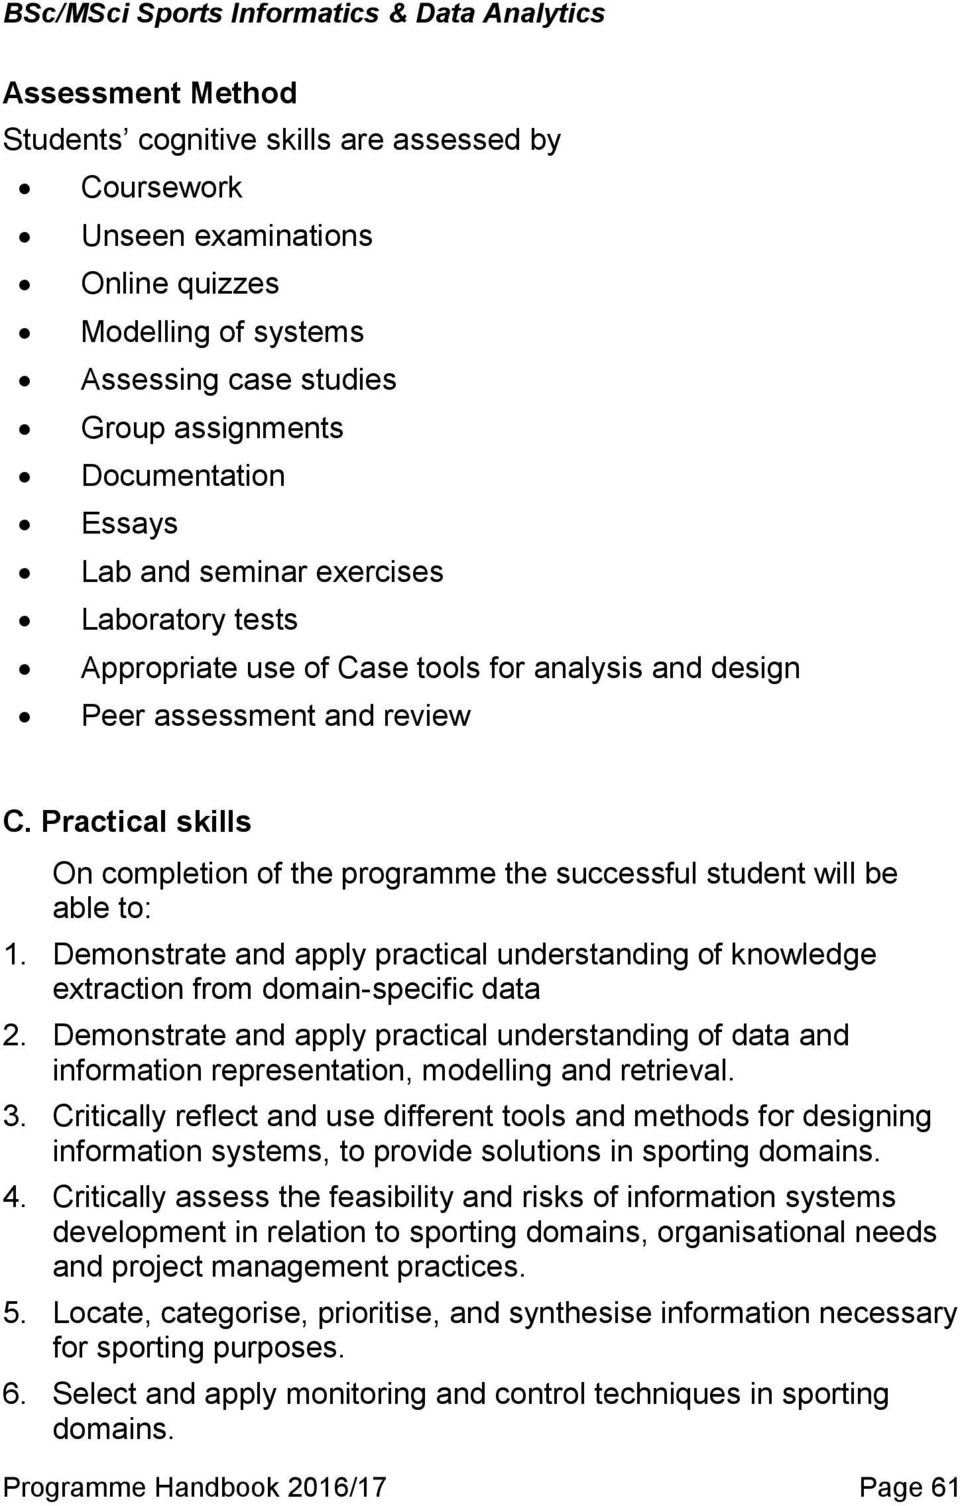 Practical skills On completion of the programme the successful student will be able to: 1. Demonstrate and apply practical understanding of knowledge extraction from domain-specific data 2.